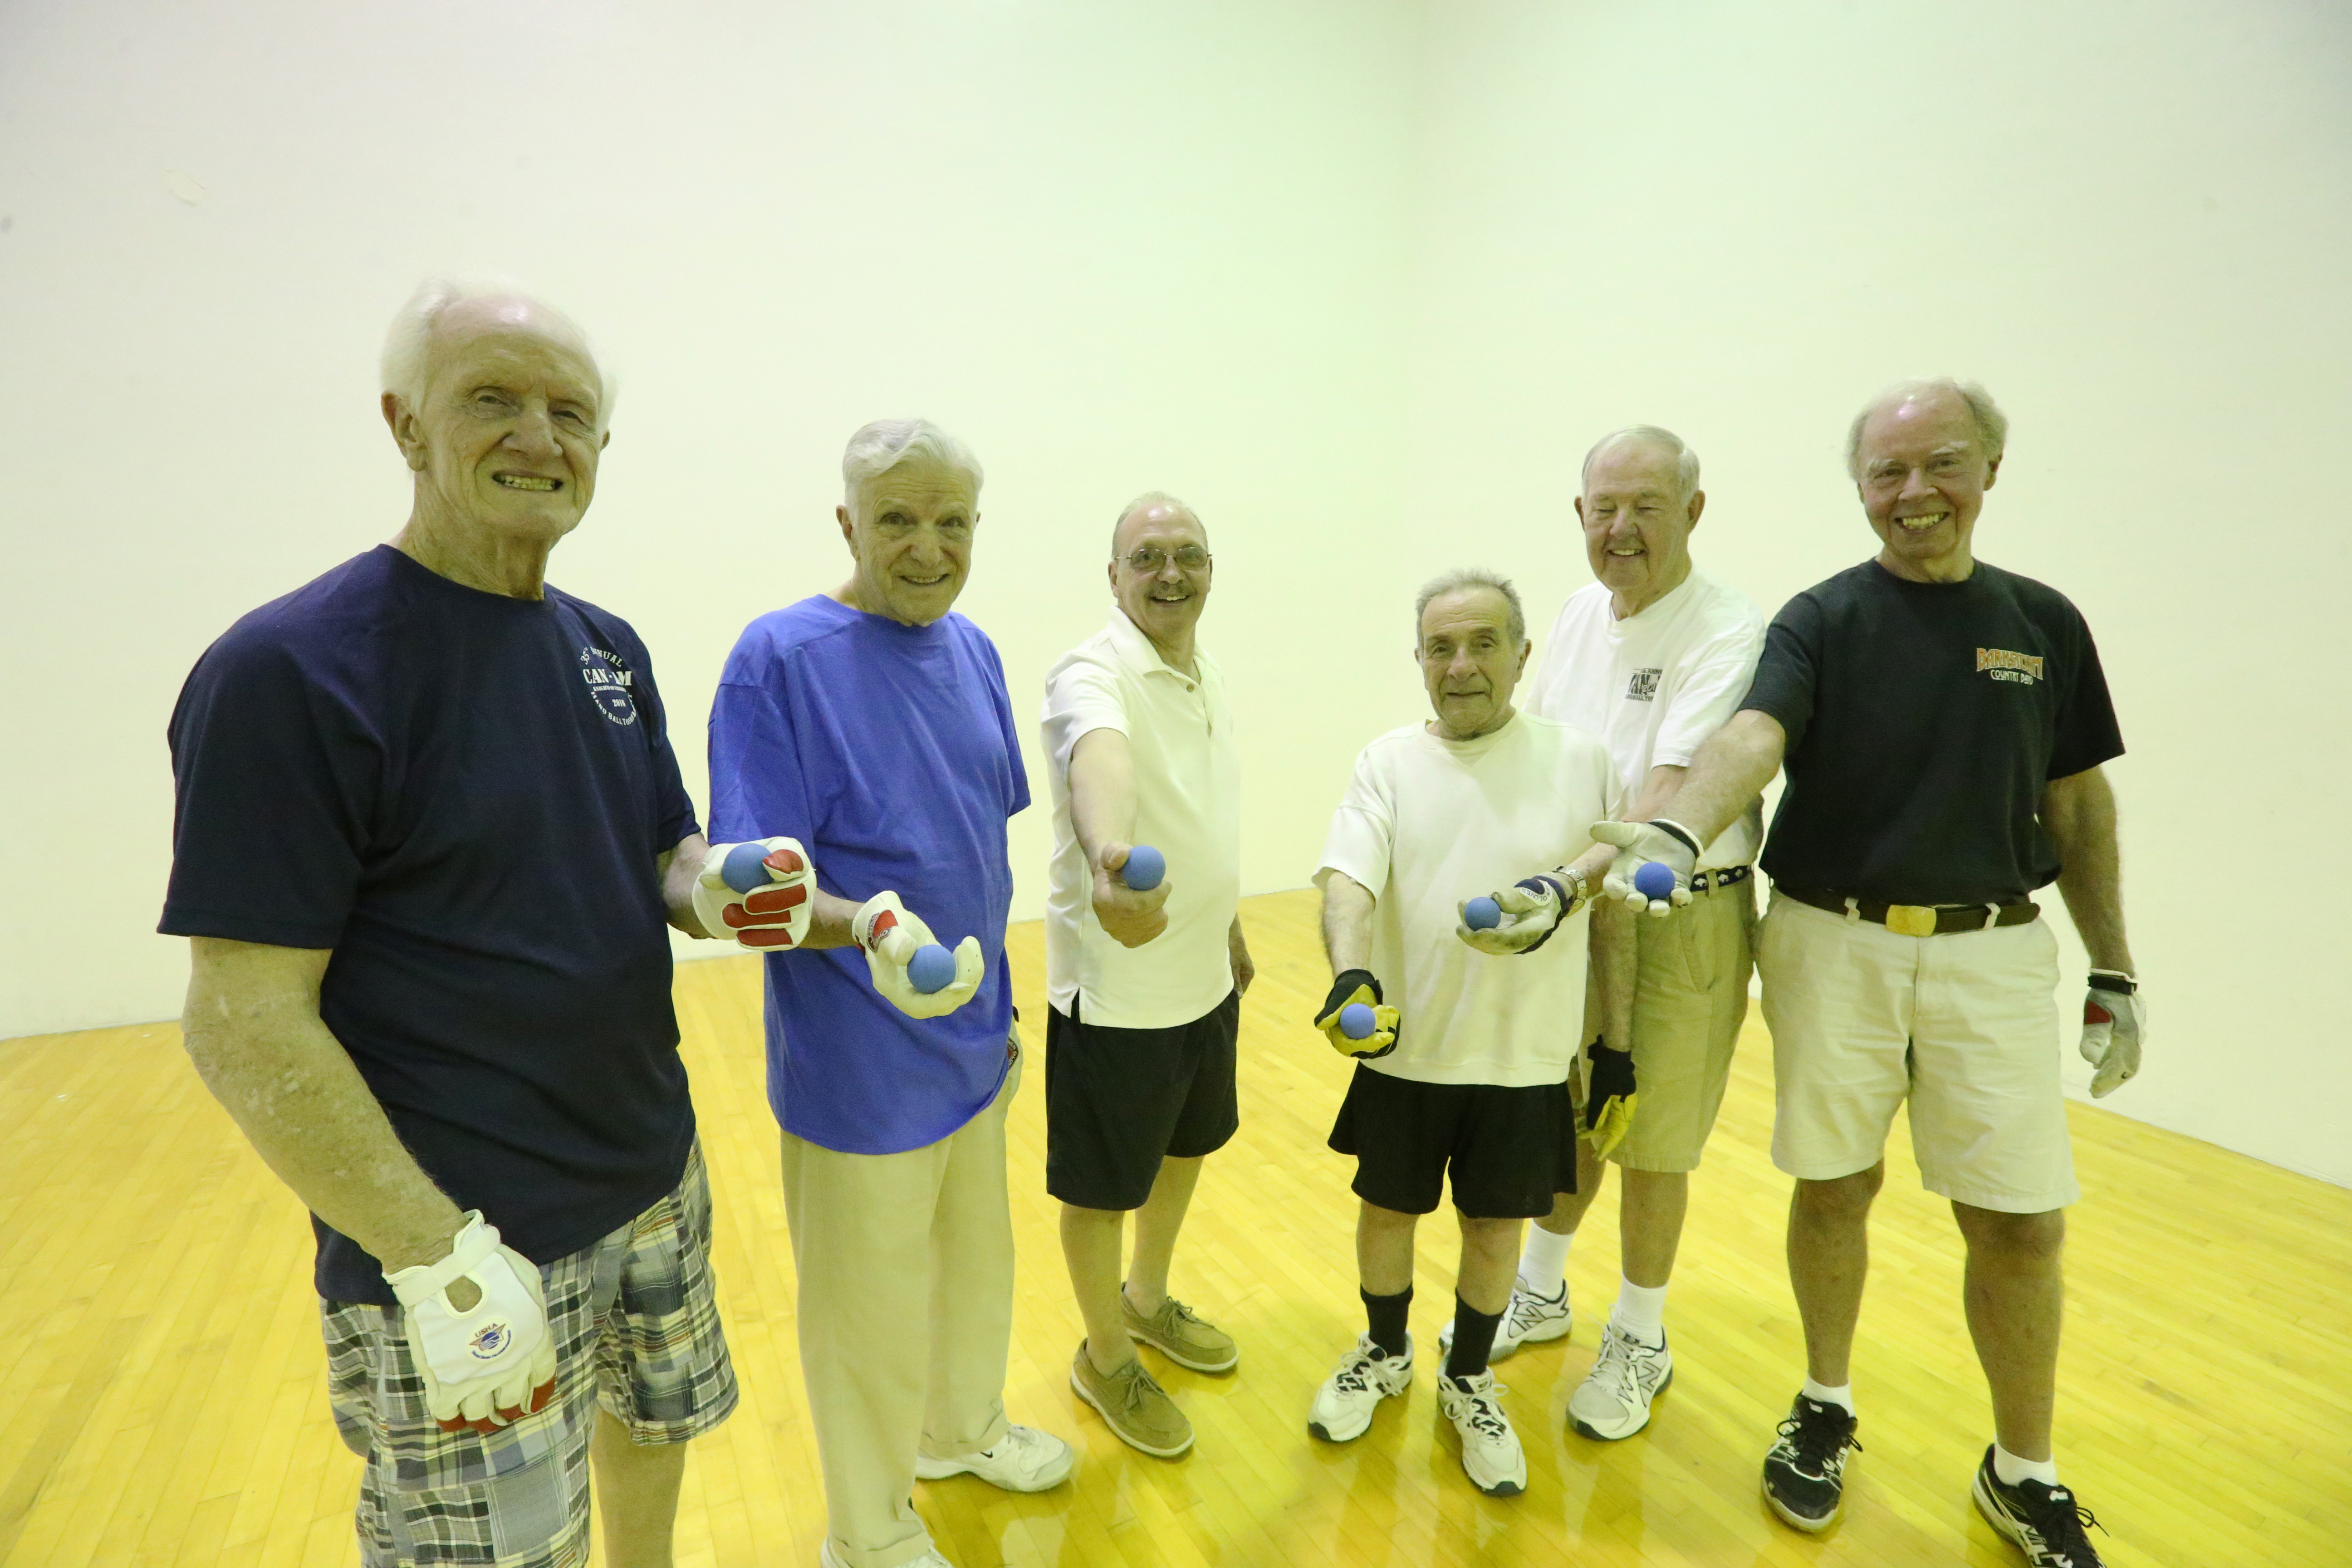 Tommy Ryan, Mike Caliguiri, Robin Block, Joe Heiney, Tom Higgins and Jimmy Roberts at the handball court at the Knights of Columbus on Delaware Avenue. (James P. McCoy/Buffalo News)